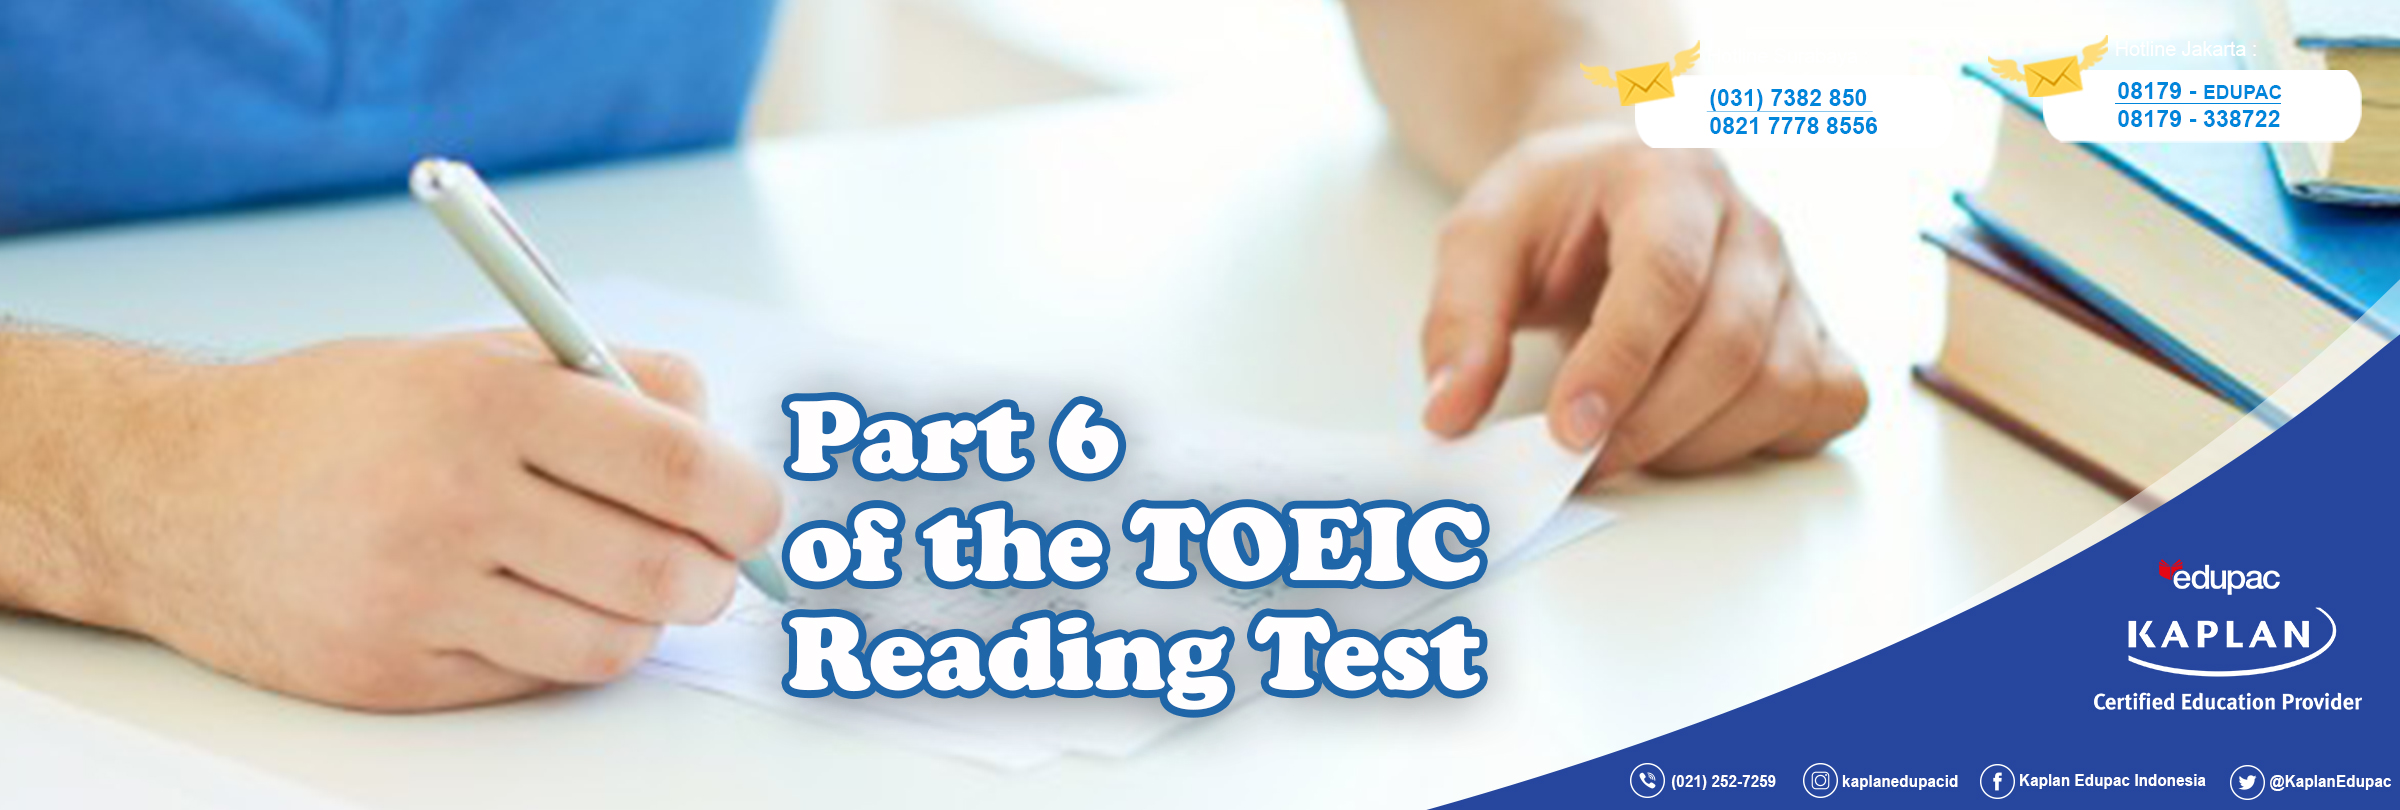 Part 6 of the TOEIC Reading Test